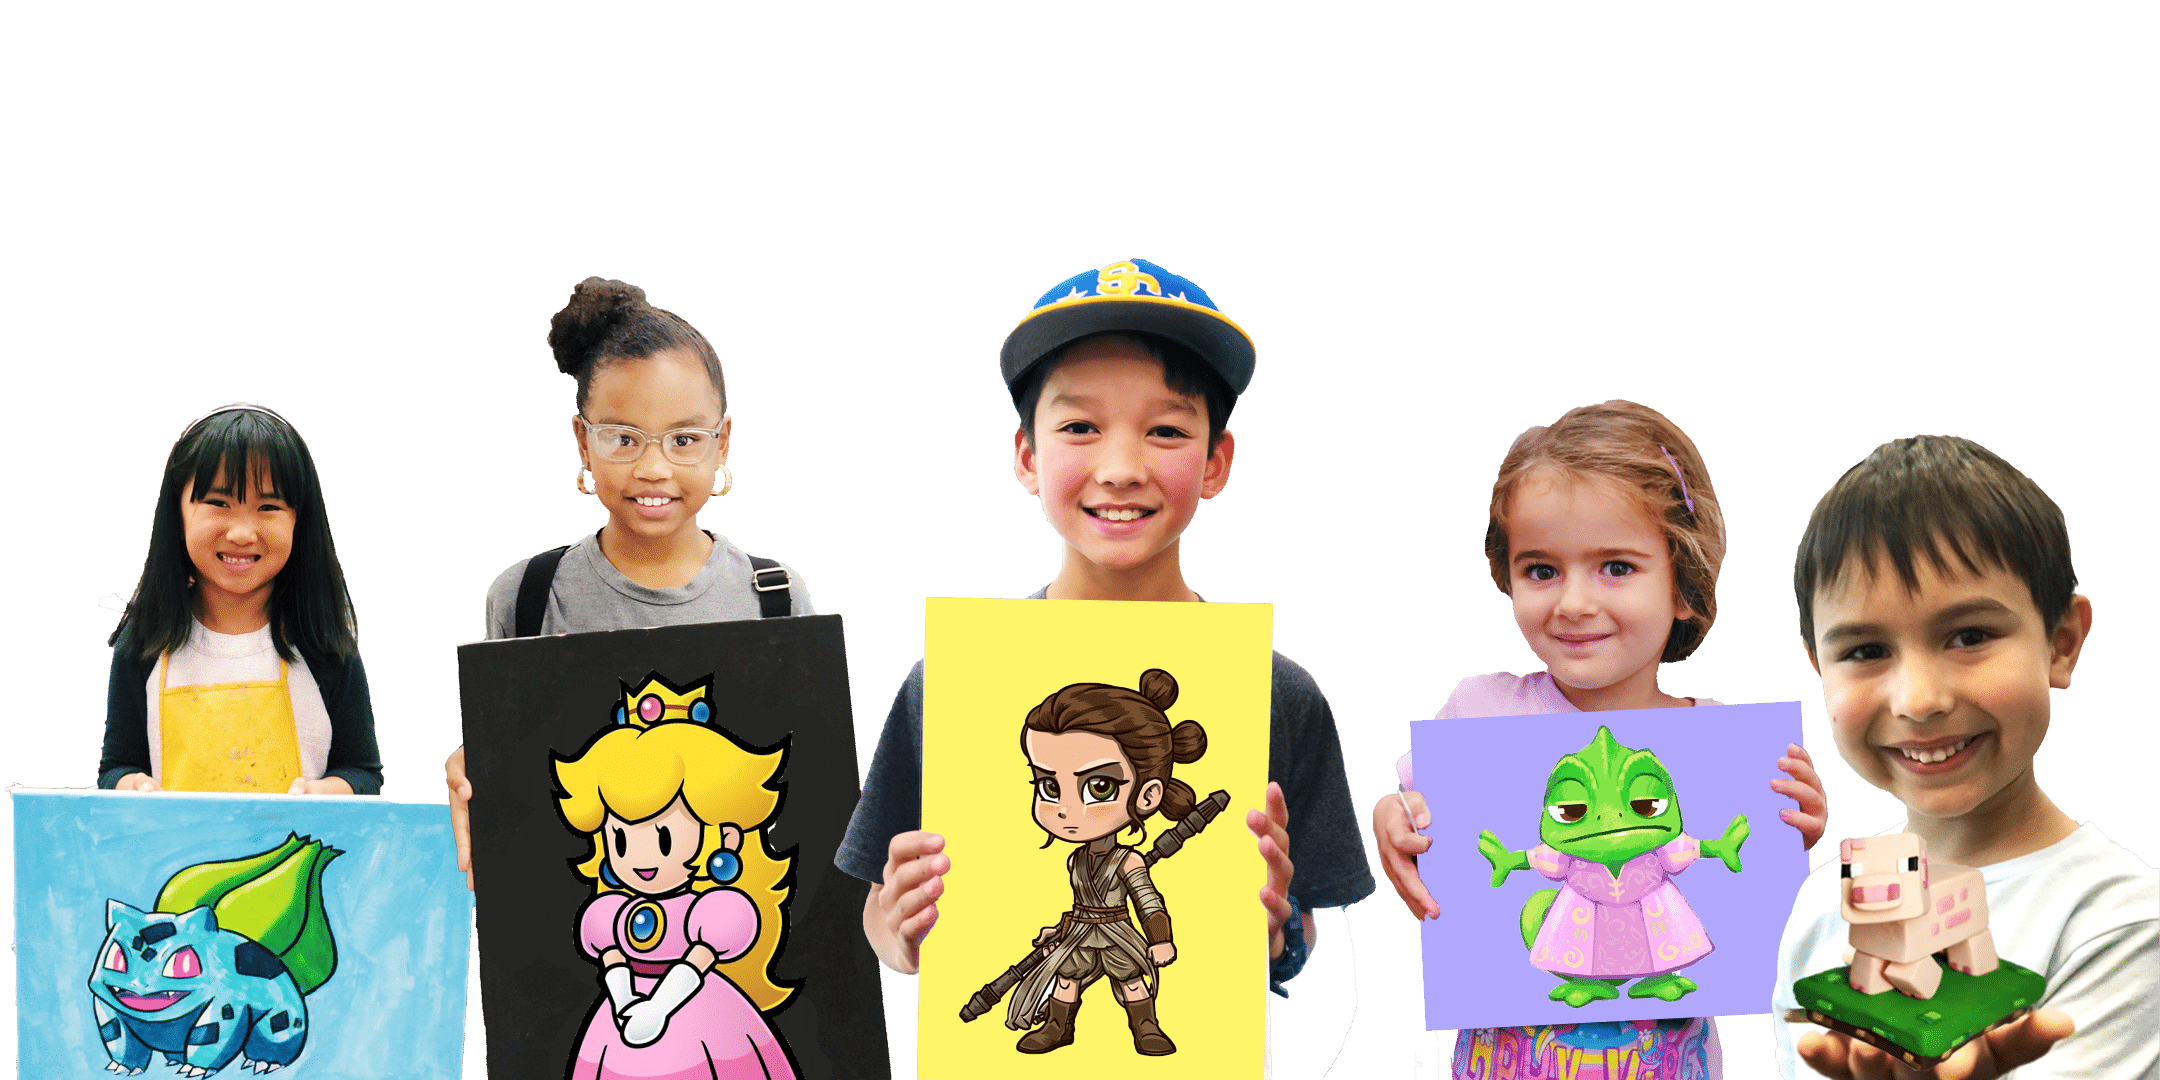 photo of 5 kids holding their artwork